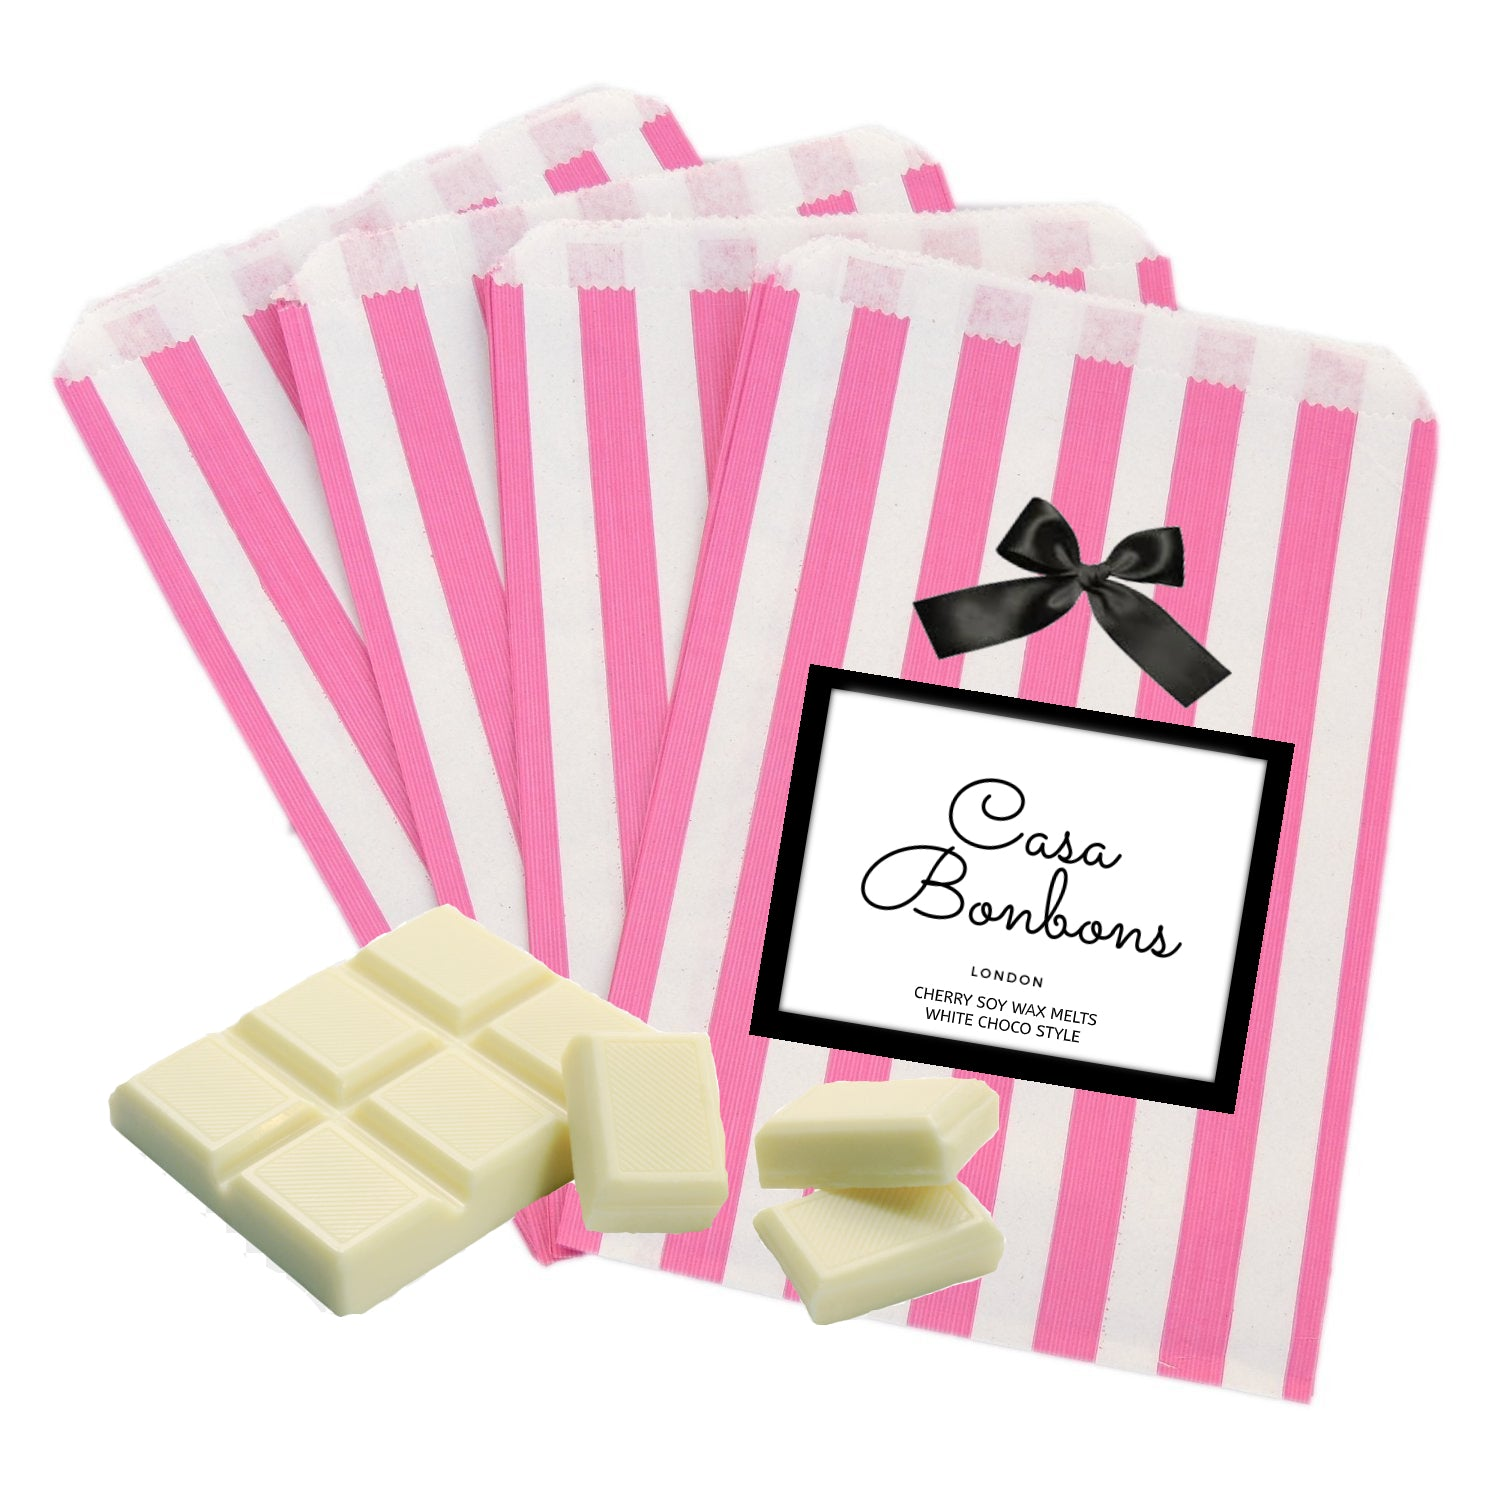 Cherry gentle scented white chocolate style Soy Wax Melts, PRE-ORDER delivery around 15th of December - natoorio